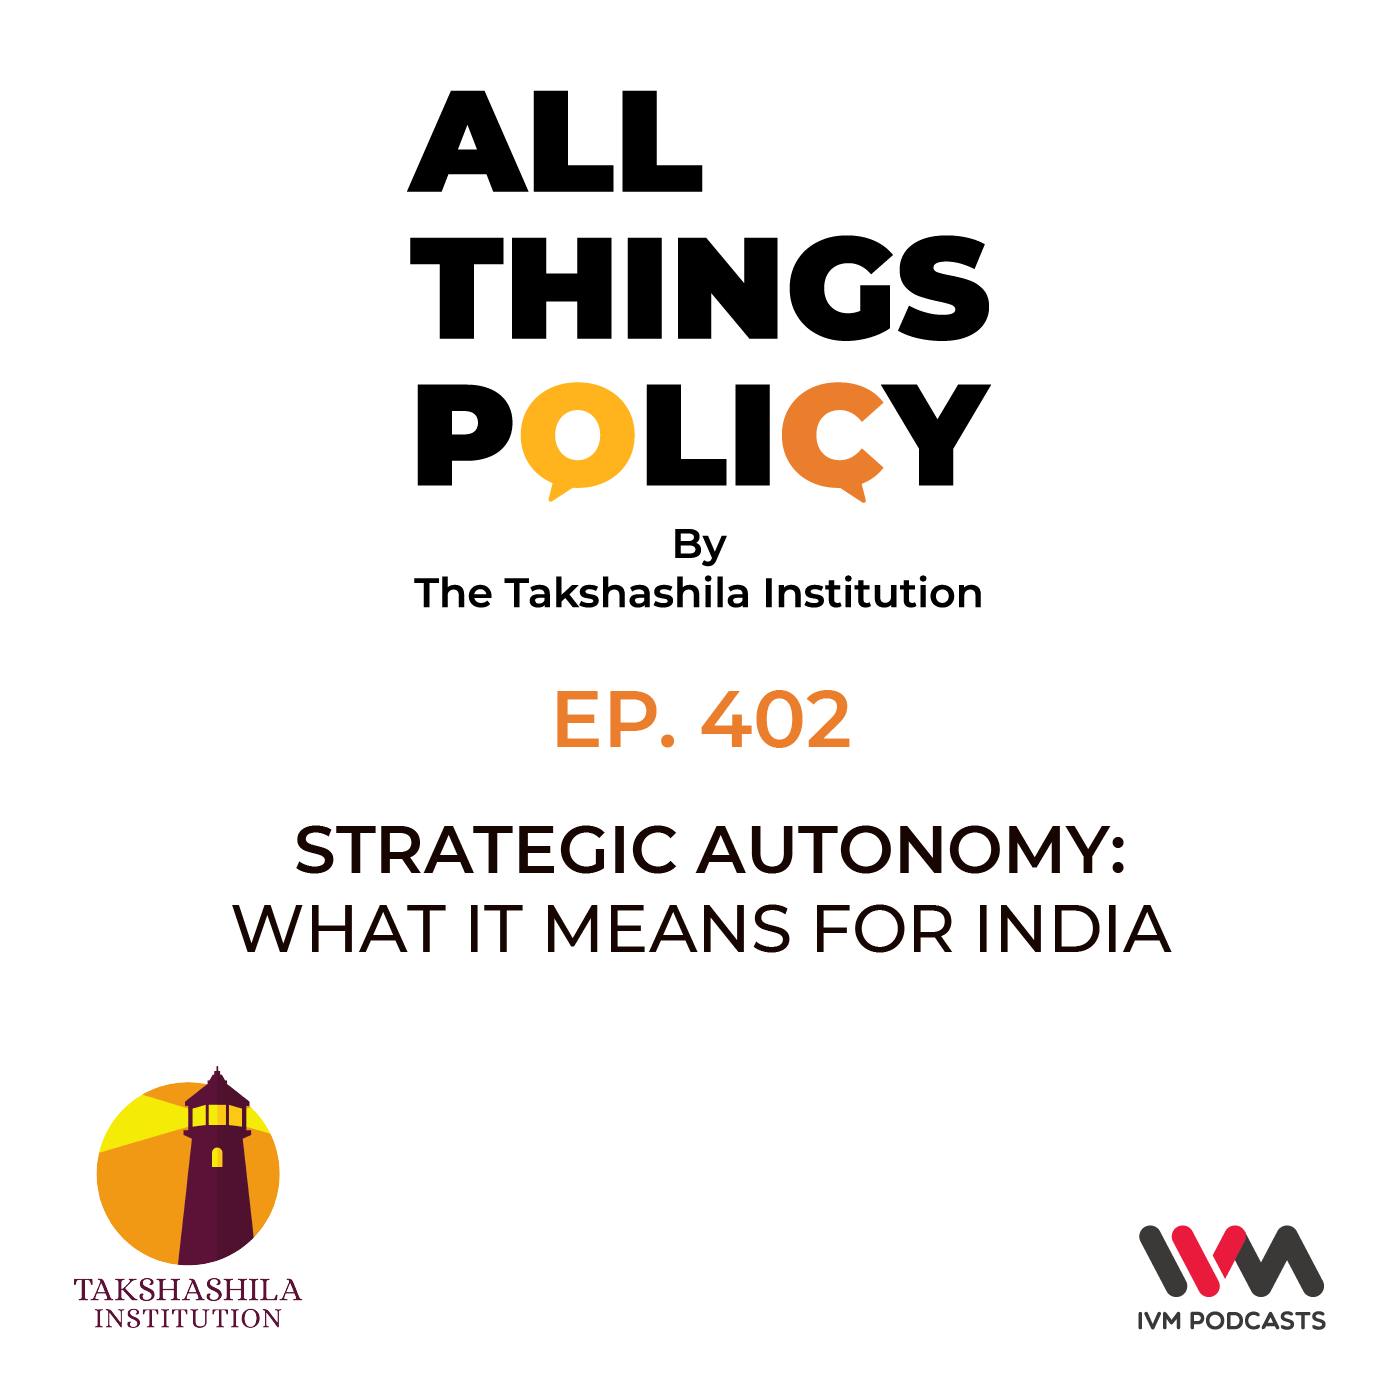 Ep. 402: Strategic Autonomy: What It Means for India